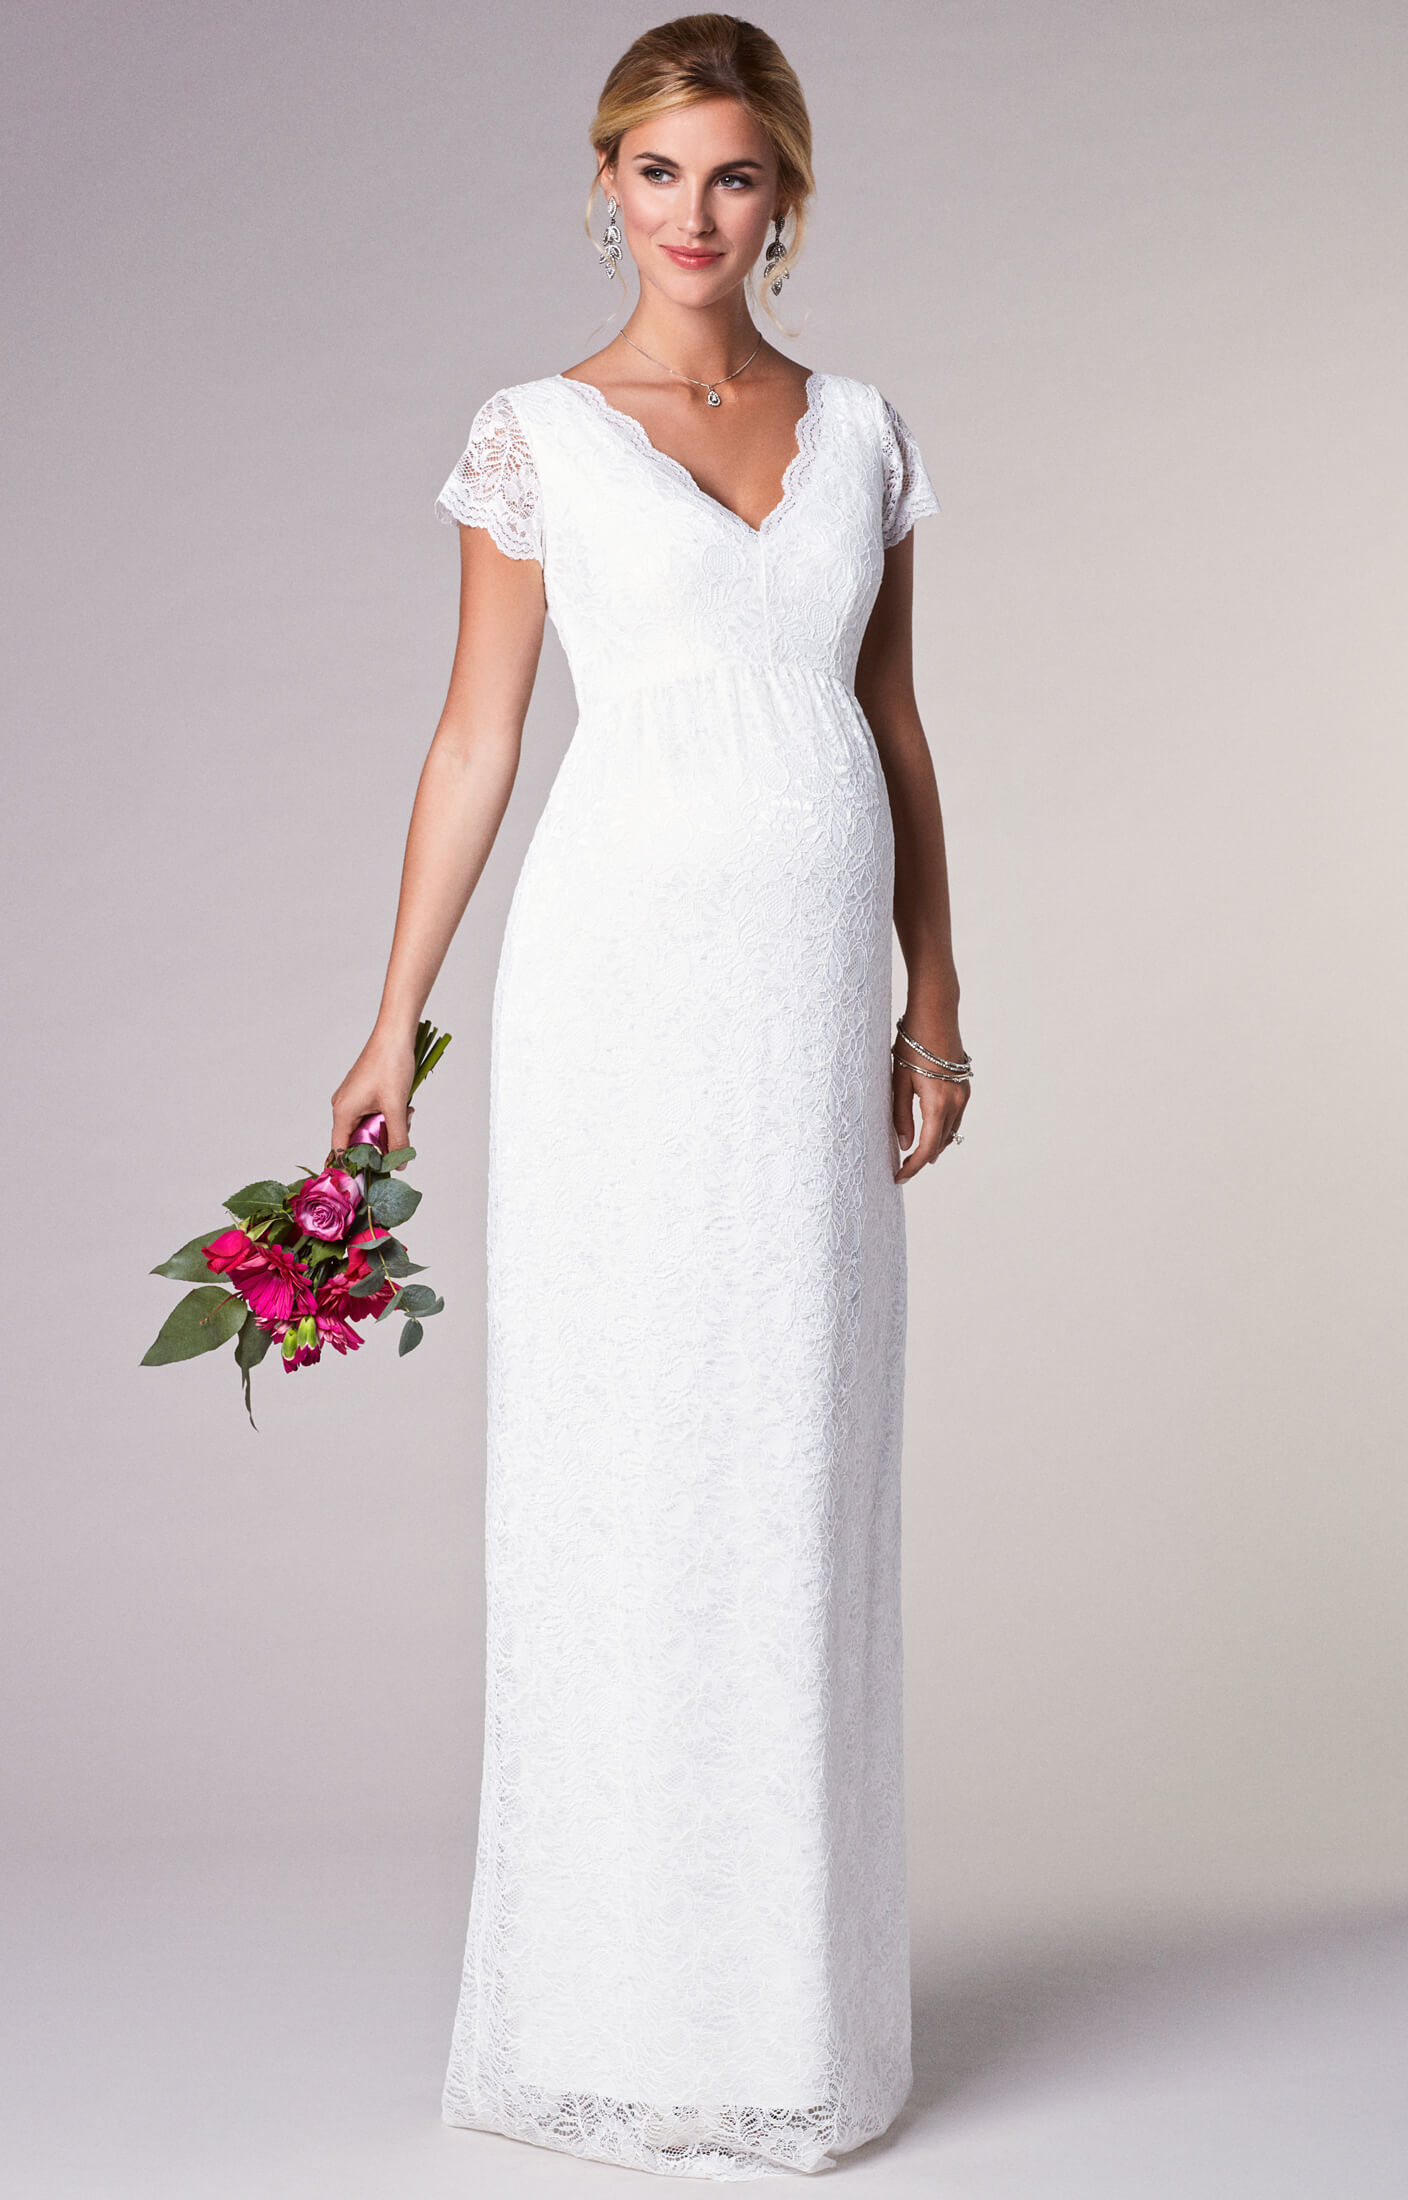 4a0709965ae89 Laura Maternity Wedding Lace Gown Long Ivory - Maternity Wedding Dresses,  Evening Wear and Party Clothes by Tiffany Rose AU